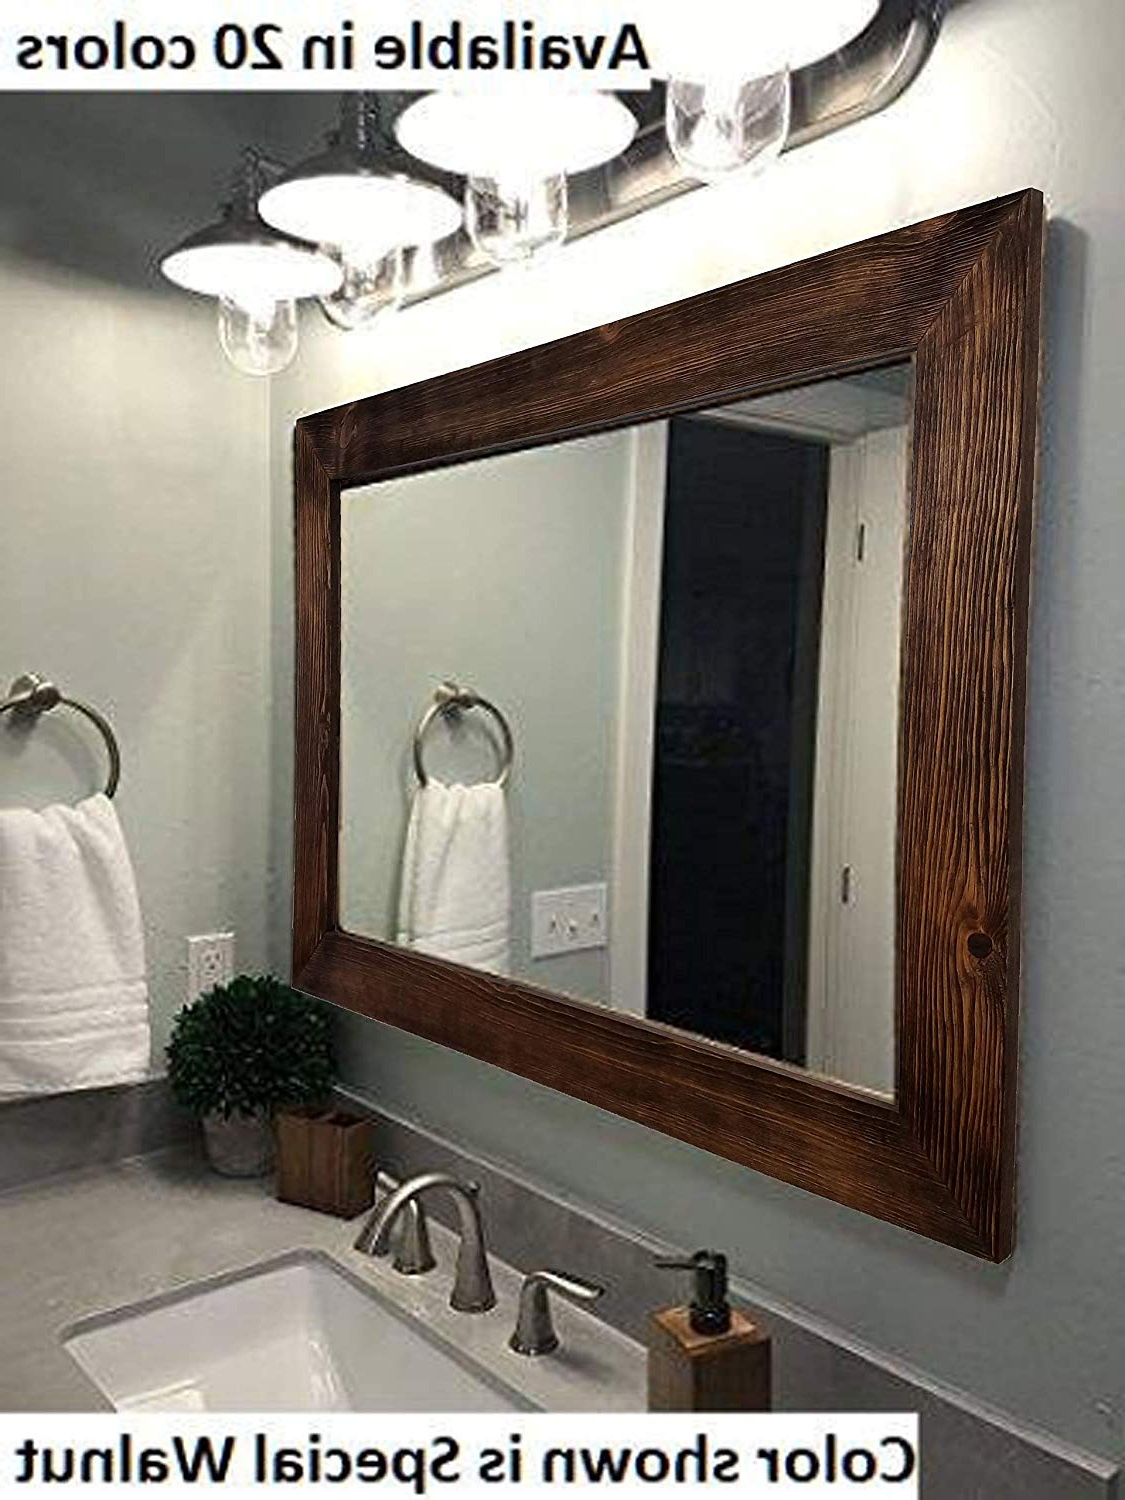 Shiplap Large Wood Framed Mirror Available In 4 Sizes And 20 Colors: Shown  In Special Walnut Stain – Large Wall Mirror – Rustic Barnwood Style – For 2020 Large Wood Wall Mirrors (View 18 of 20)